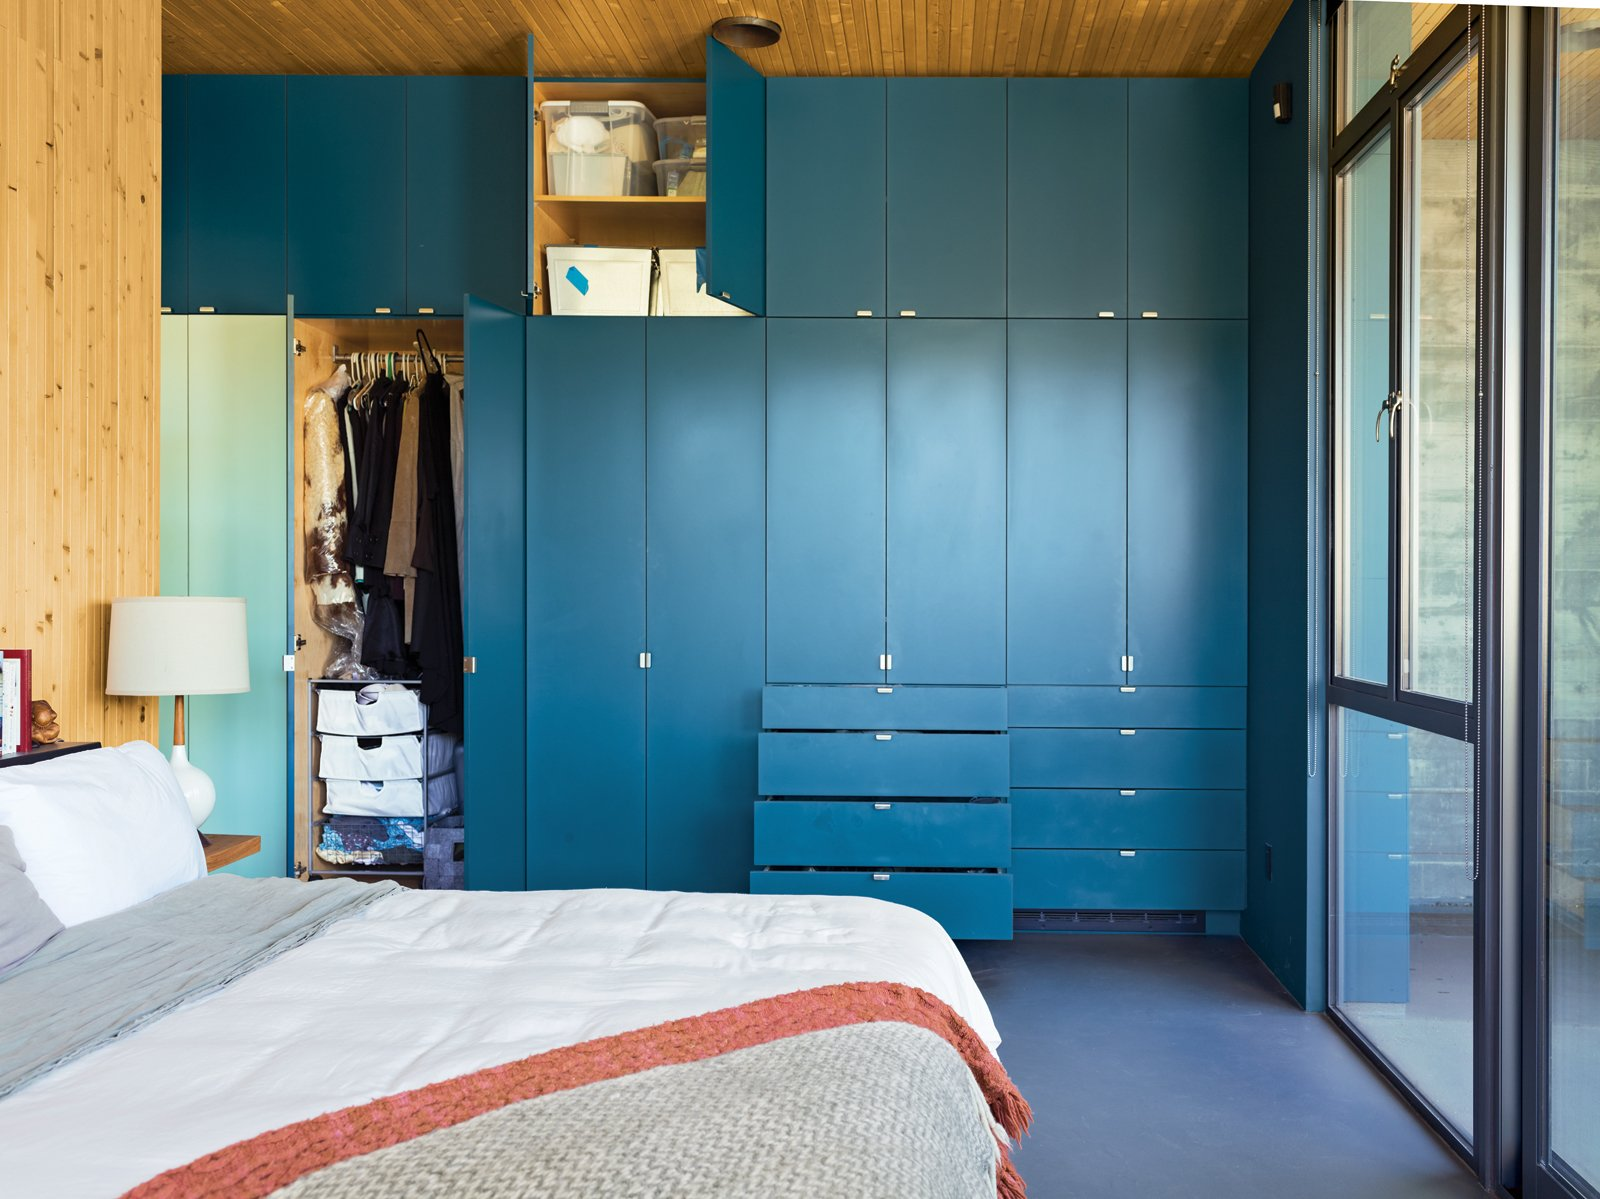 """Storage Room, Cabinet Storage Type, and Closet Storage Type In such a small space """"you have to organize, and every piece takes a decision,"""" says resident Heidi Wright. The couple keep things they use less frequently, like guest bedding, in the higher cabinets.  Photo 5 of 9 in This High-Flying Home Tackles a Sharp Slope"""